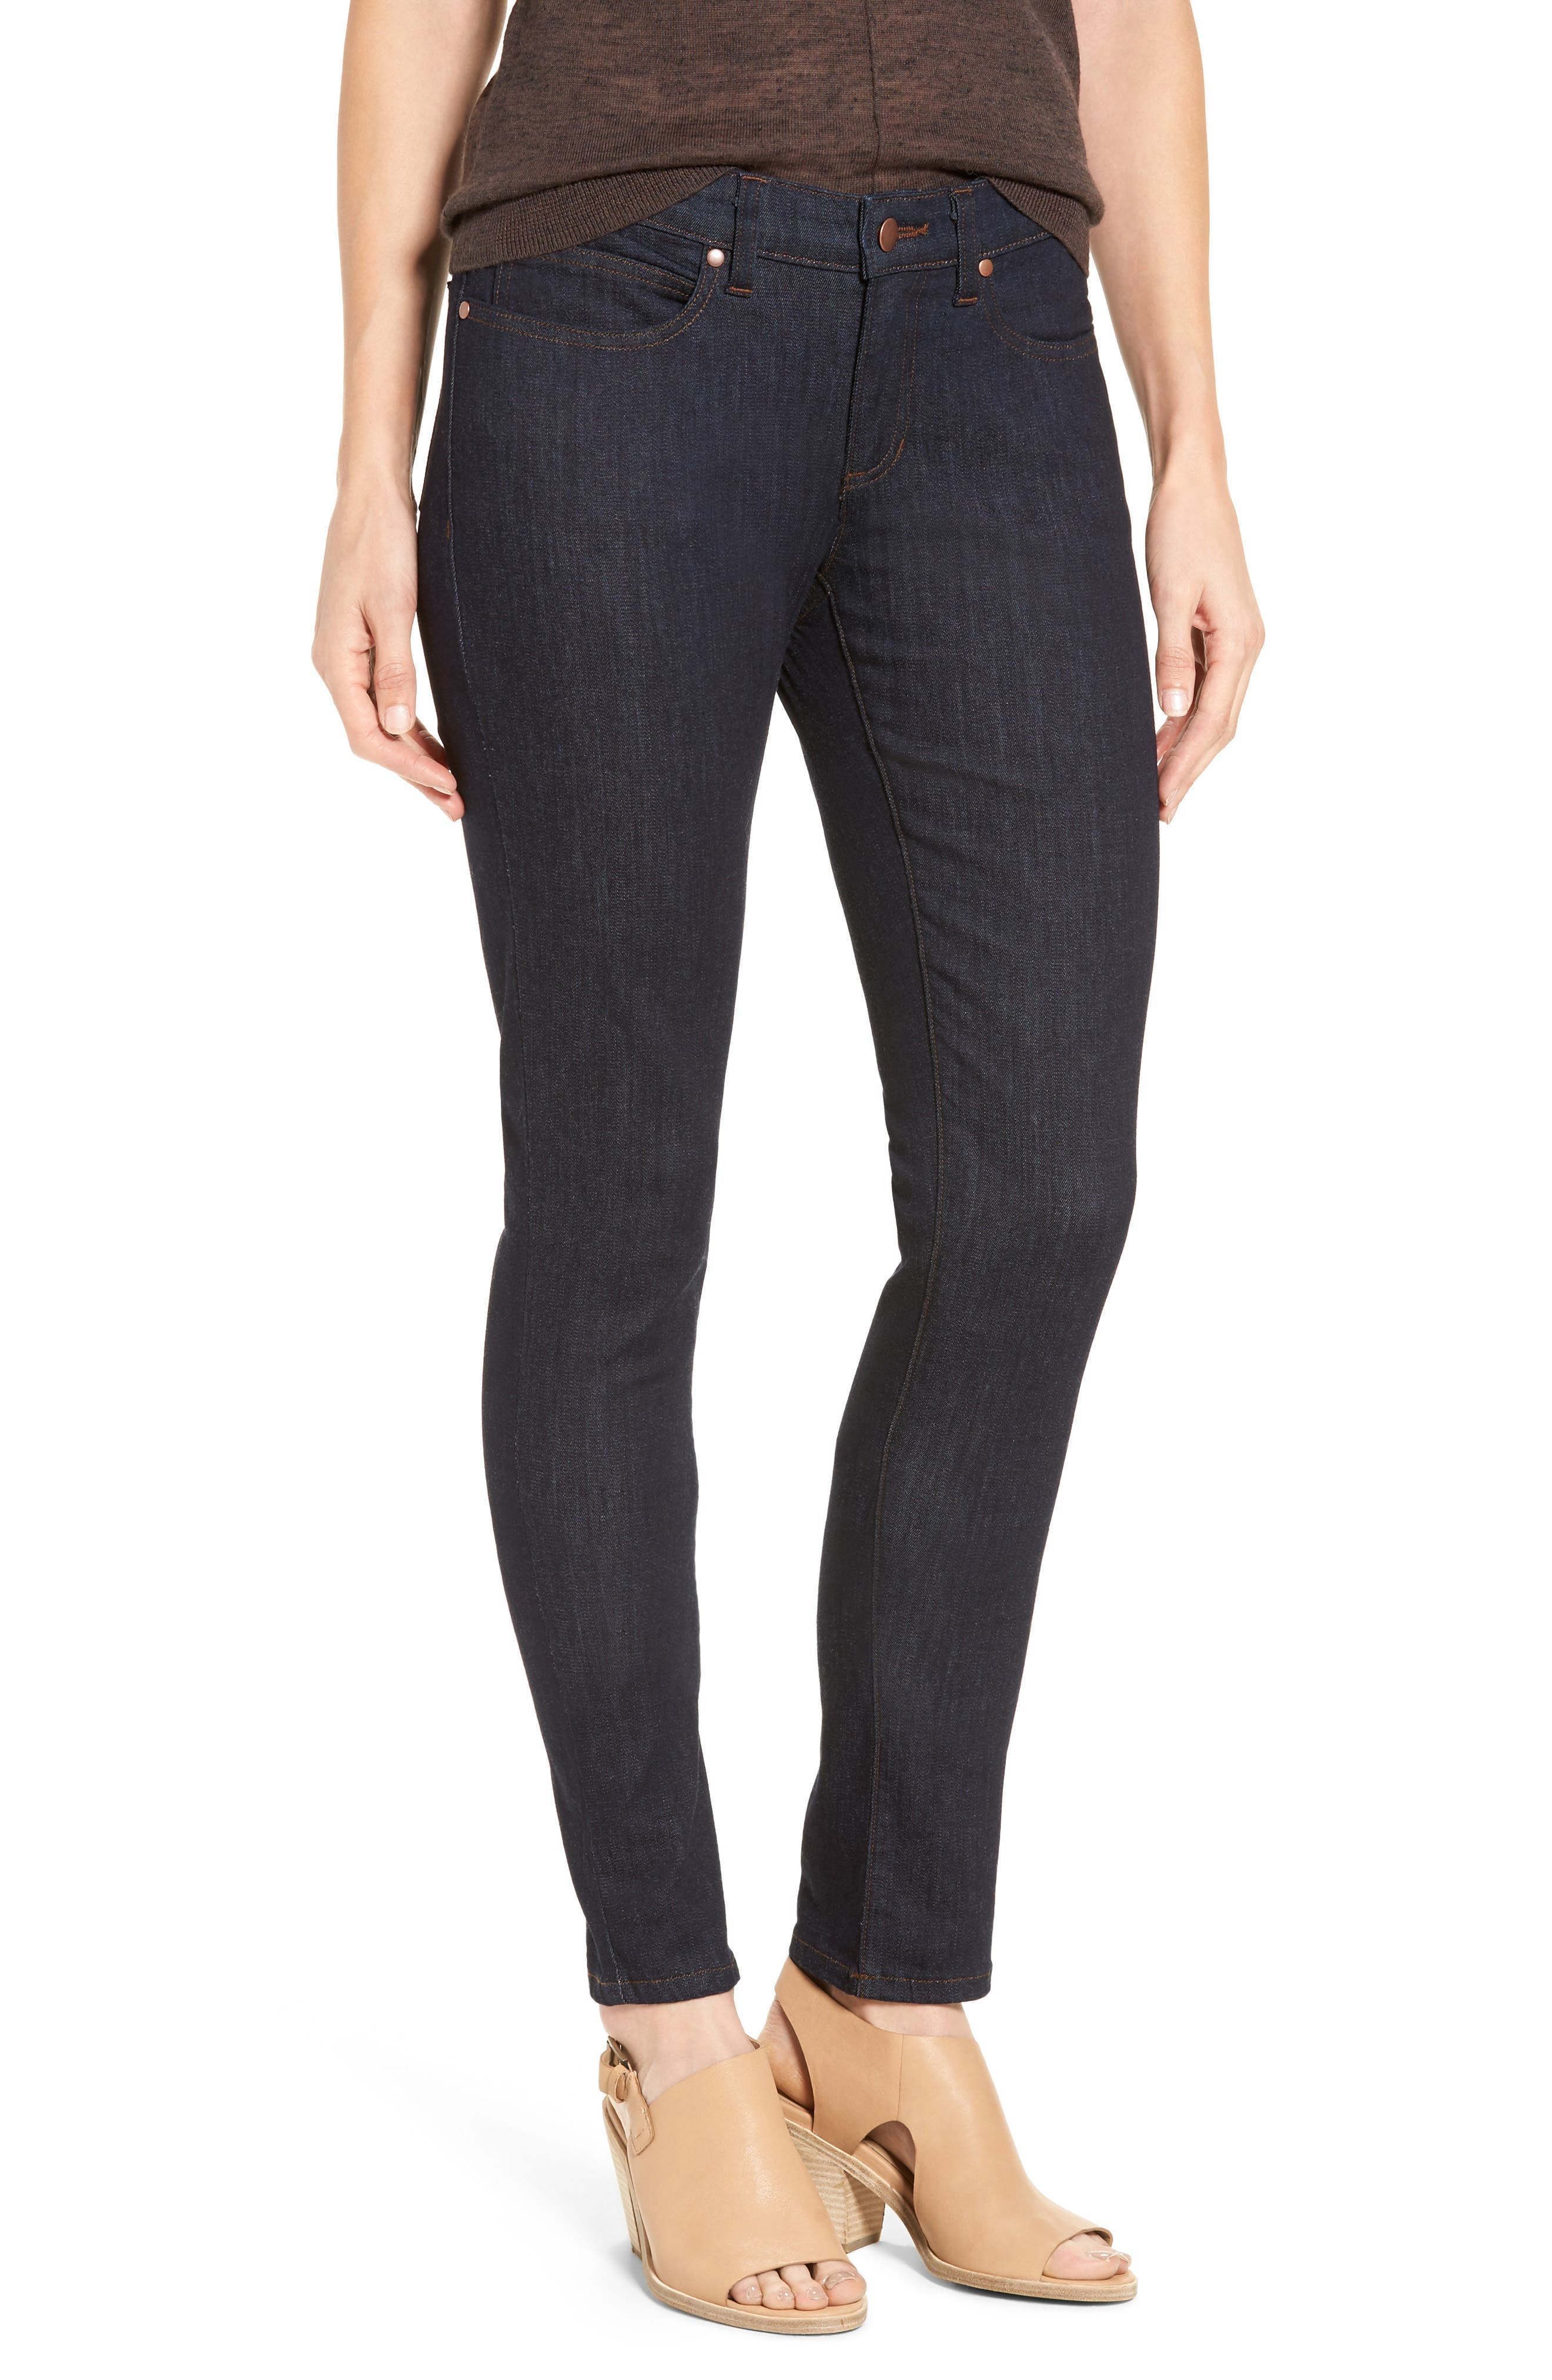 Alternate Image 1 Selected - Eileen Fisher Stretch Skinny Jeans (Regular & Petite)